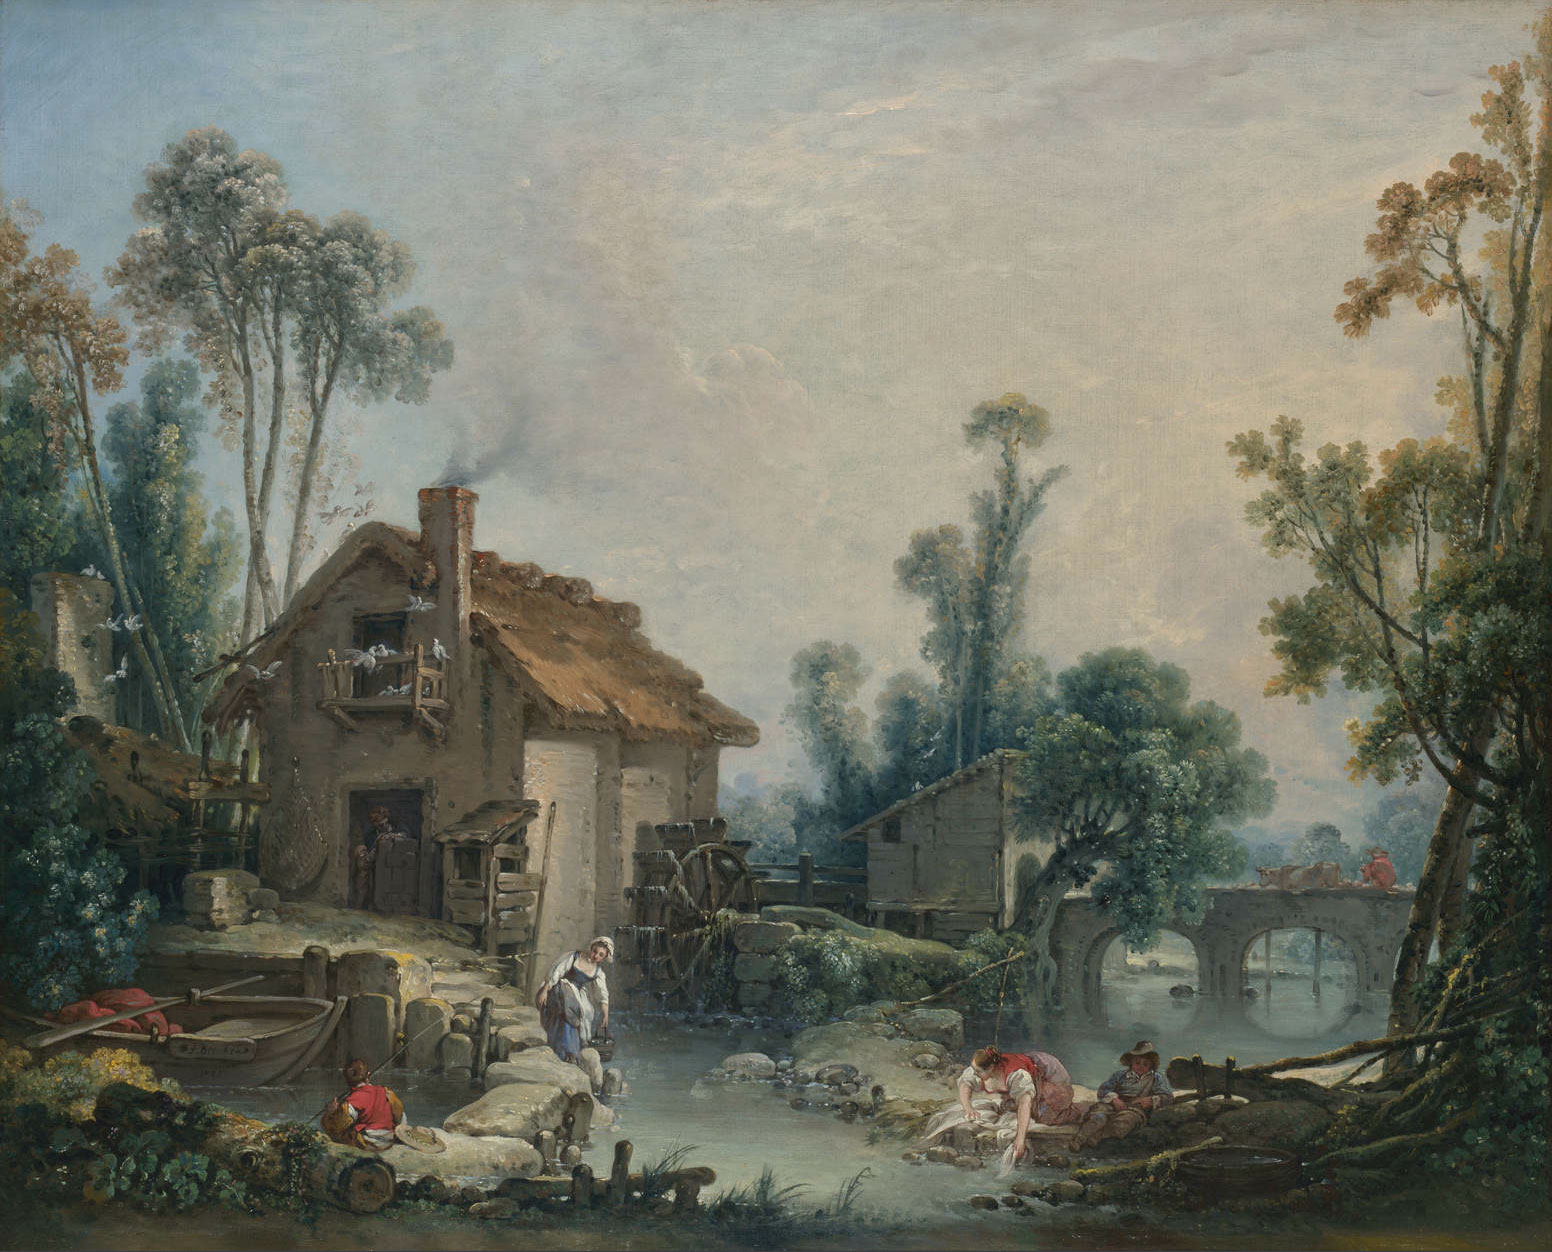 boucher - Landscape with a Watermill. 1755..jpg